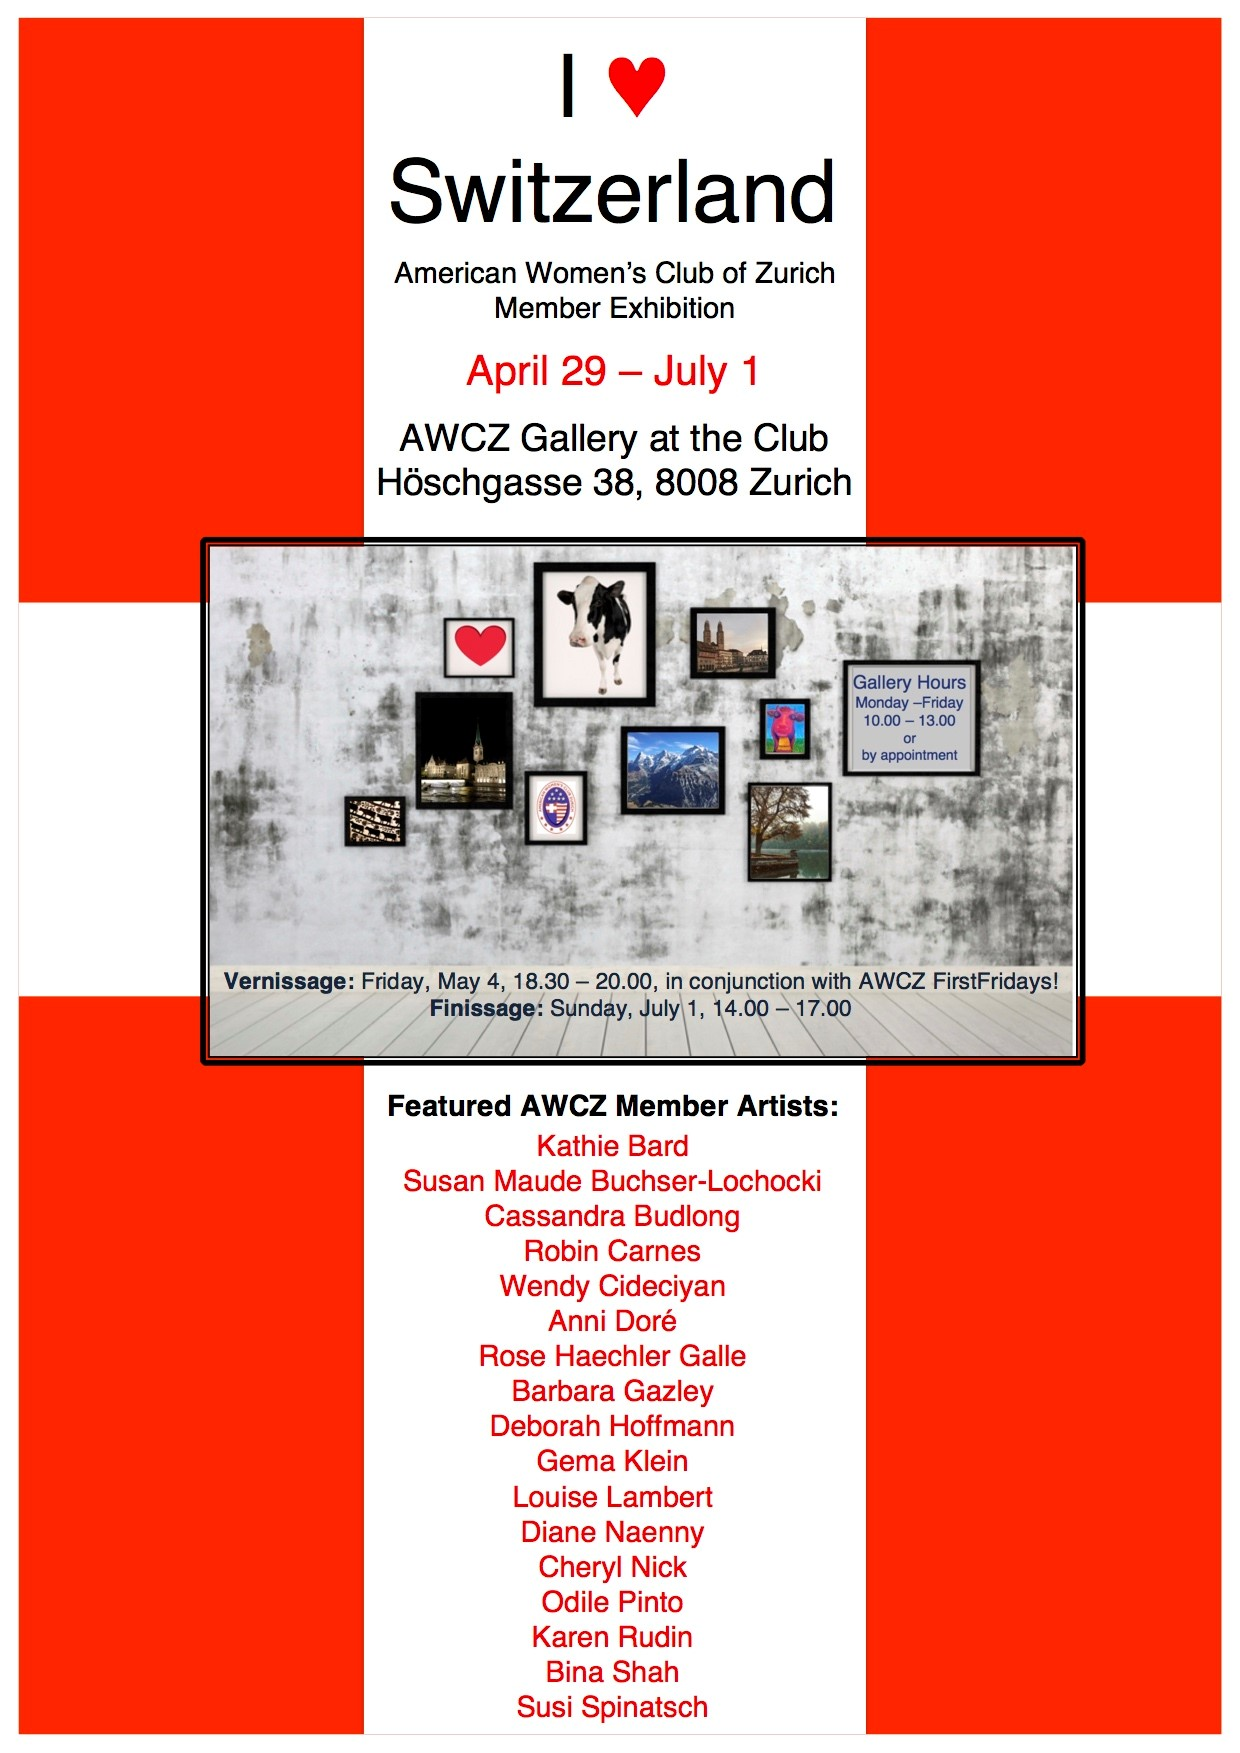 18 AWCZ Members art Exhibit.final